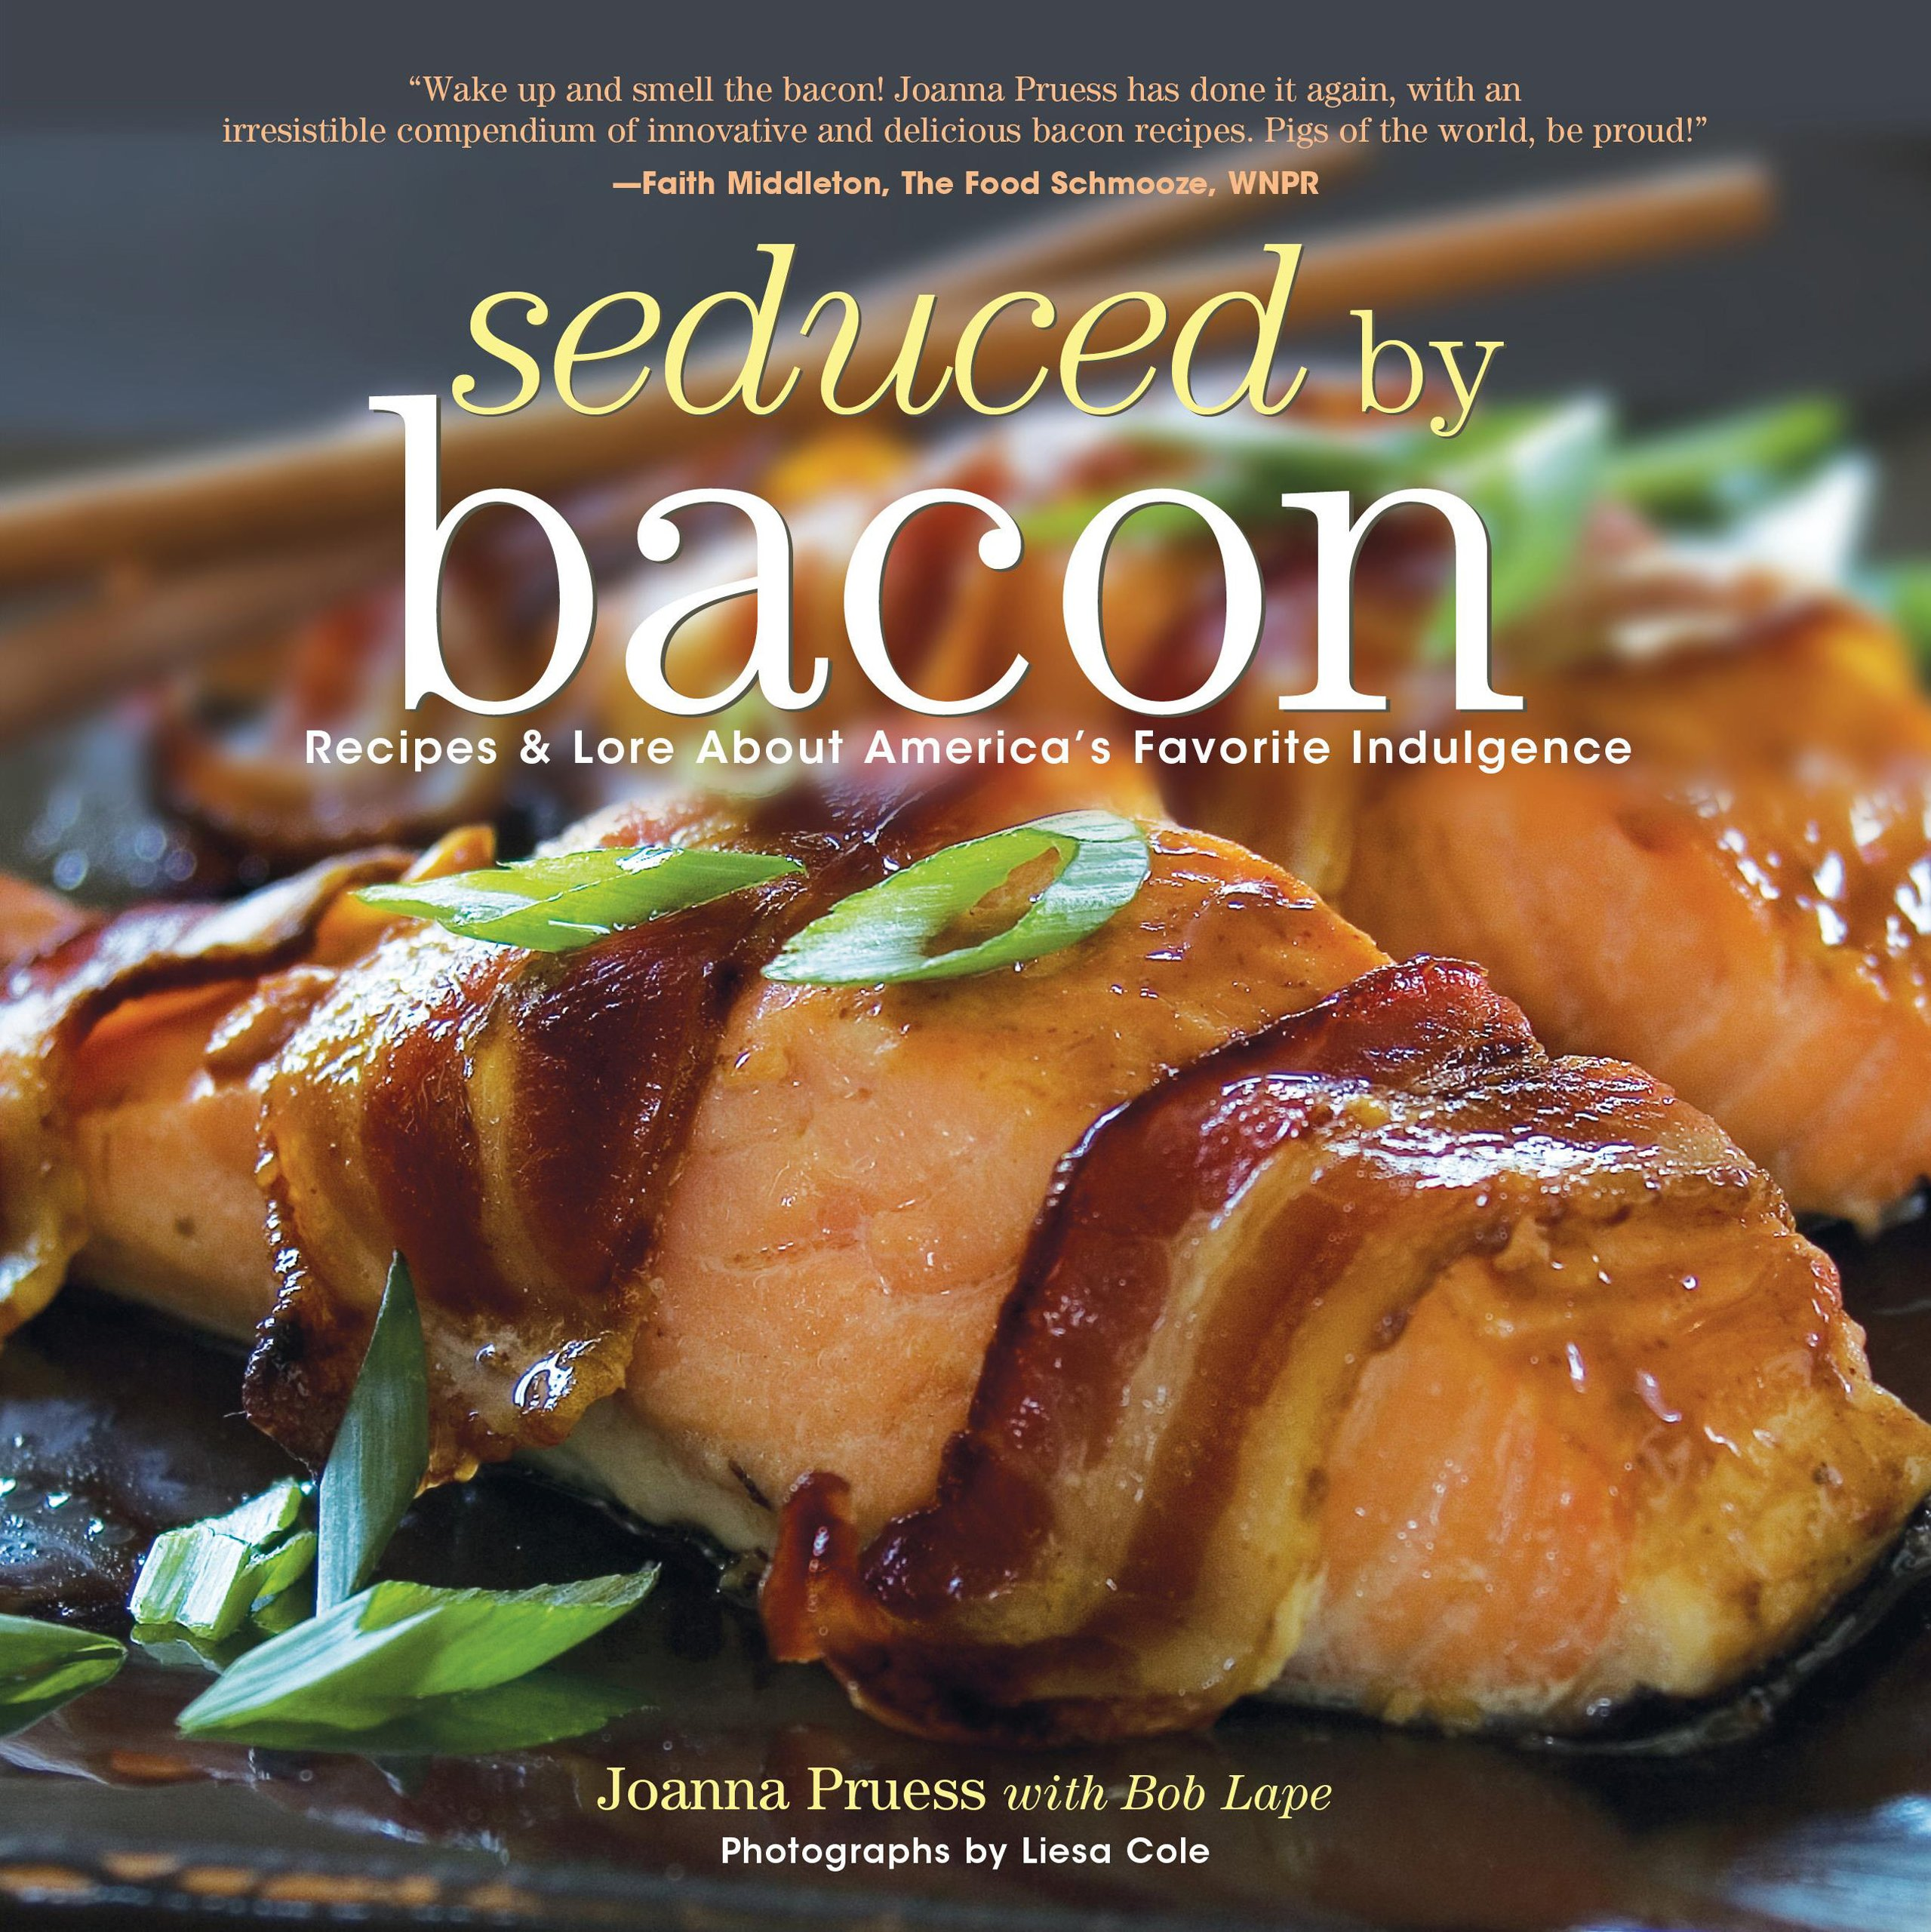 Seduced by Bacon: Recipes & Lore About America's Favorite Indulgence PDF